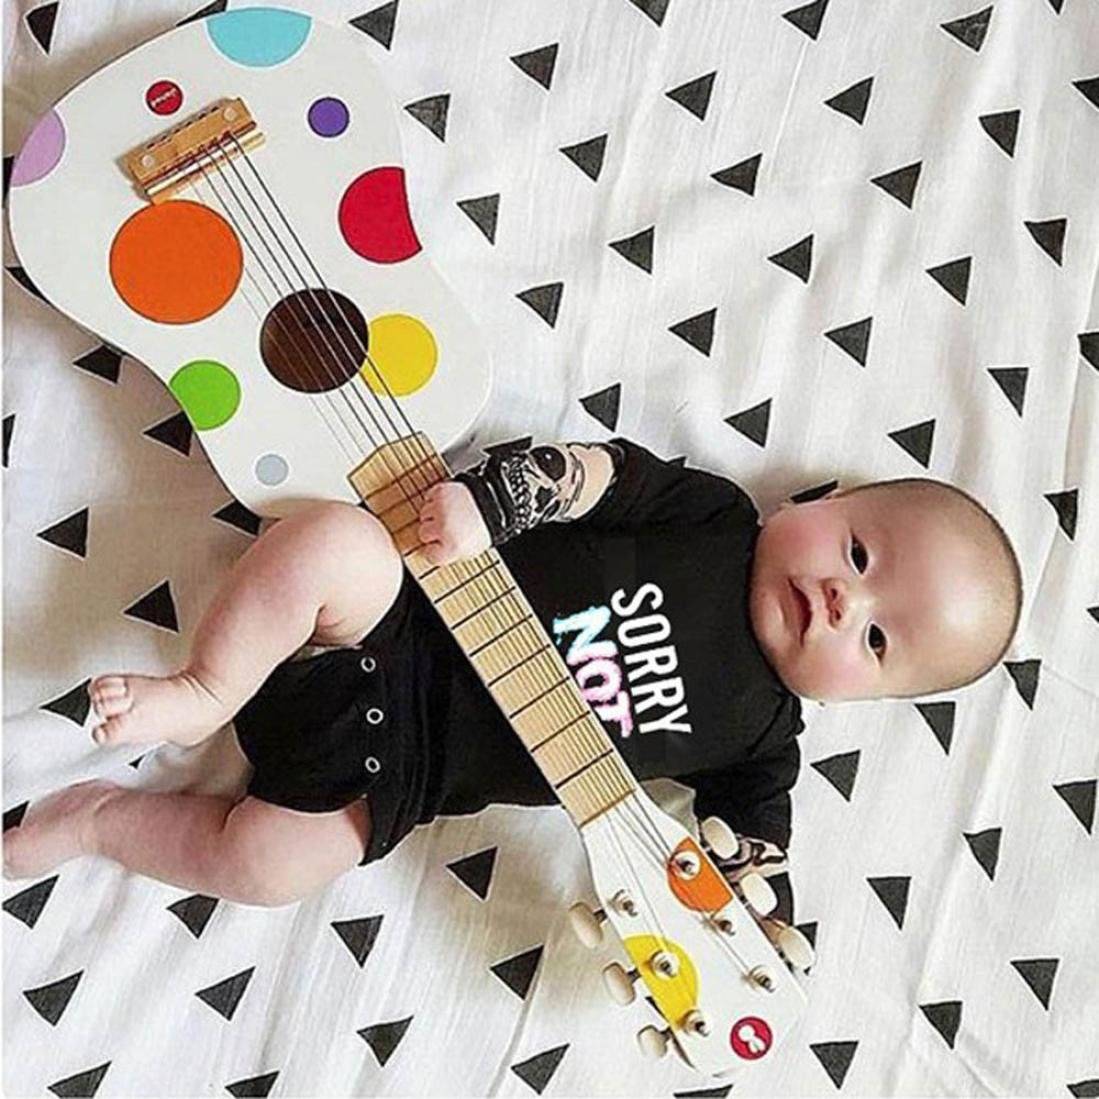 TM Size:18M, Black Fulltime Baby Romper, Baby Tattoo Sleeve Letter Romper Jumpsuit Outfits Clothes